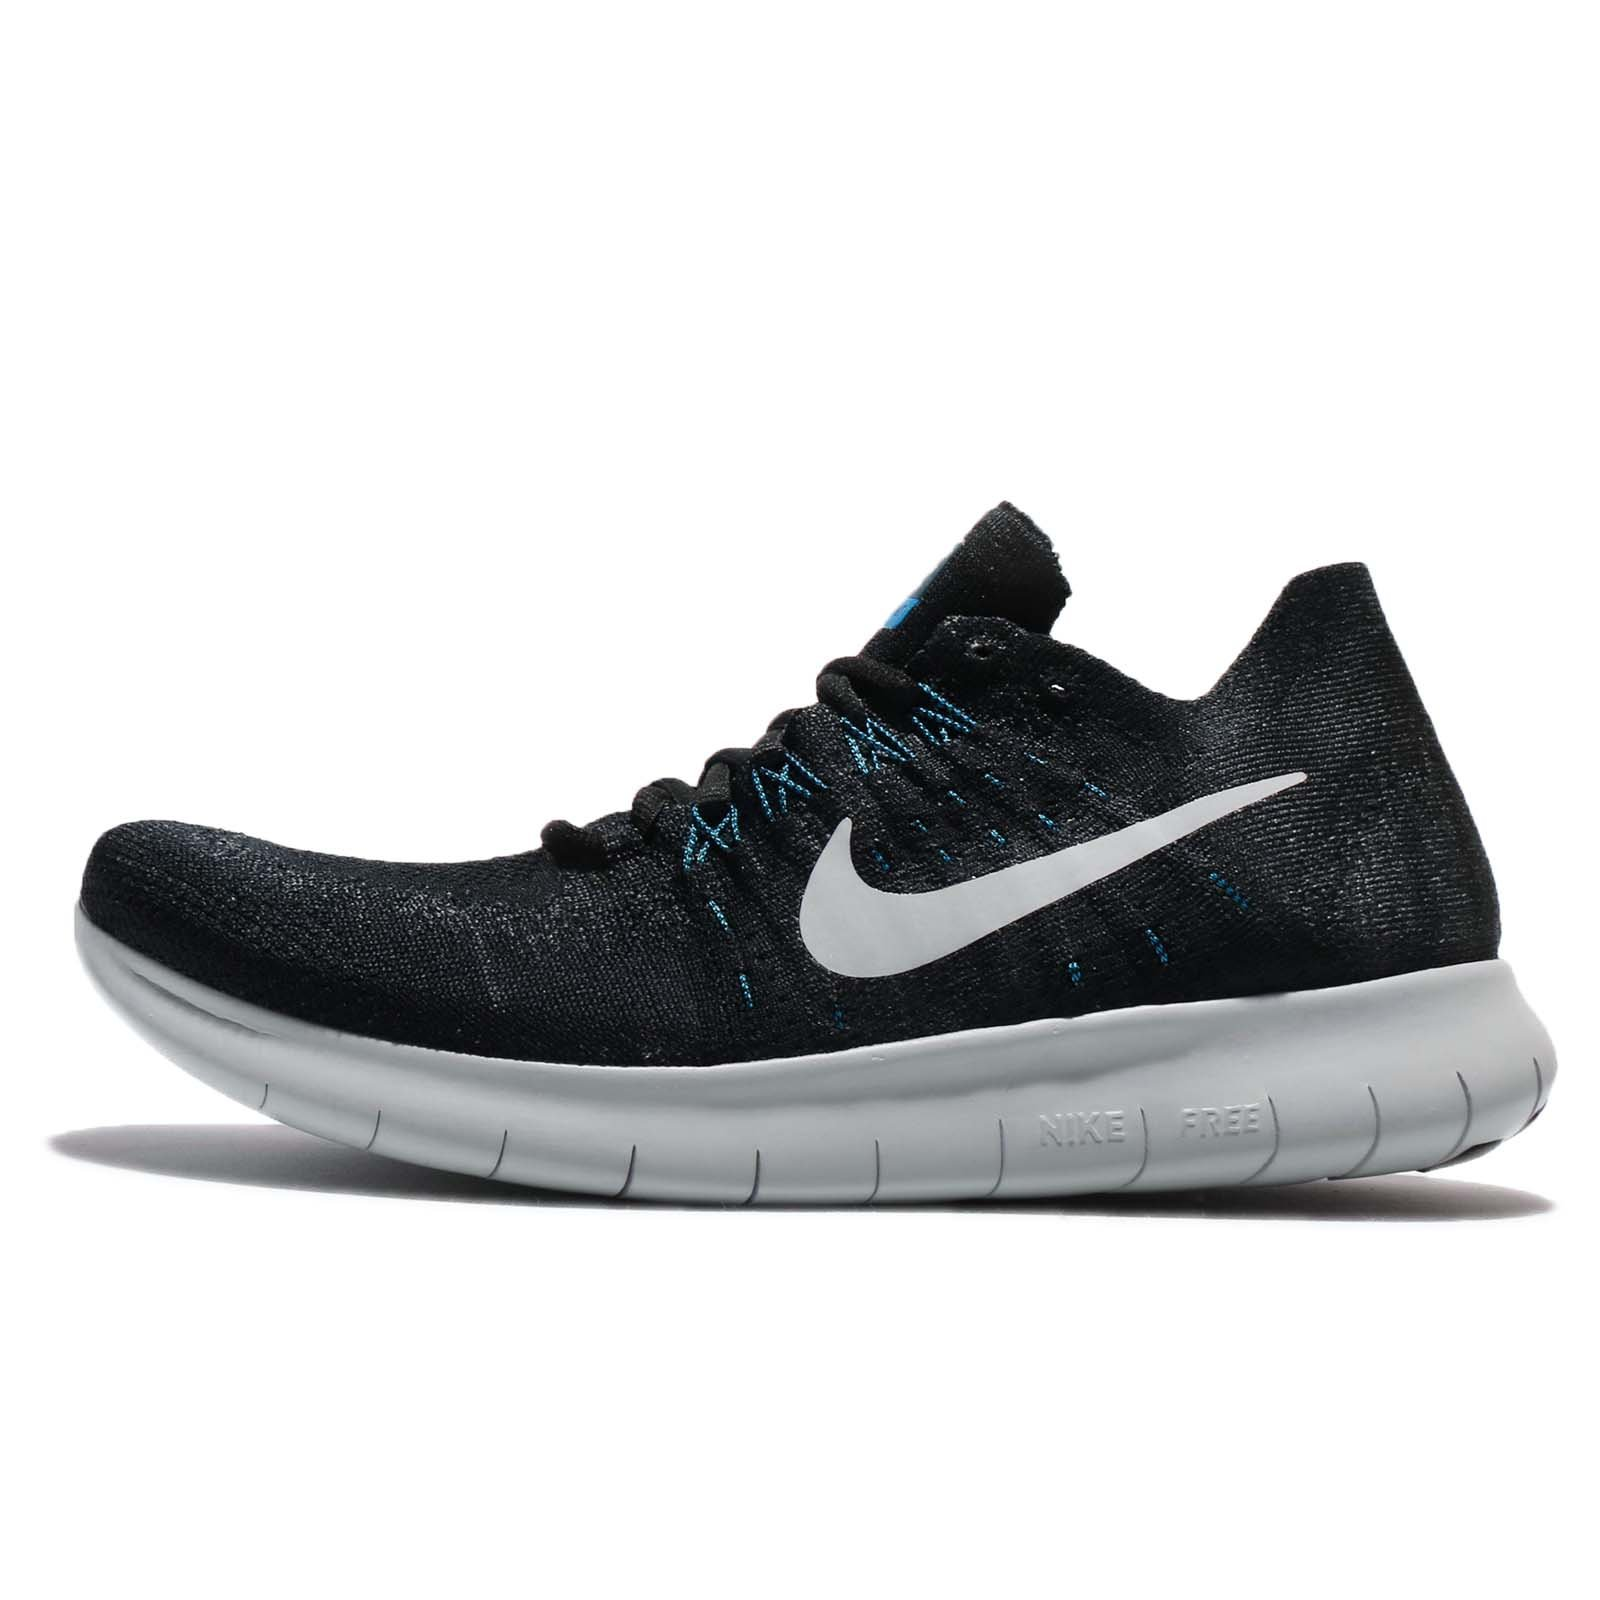 buy popular de396 d6d91 Galleon - Nike Men s Free RN Flyknit 2017, Black Off White-Anthracite, 7.5  M US